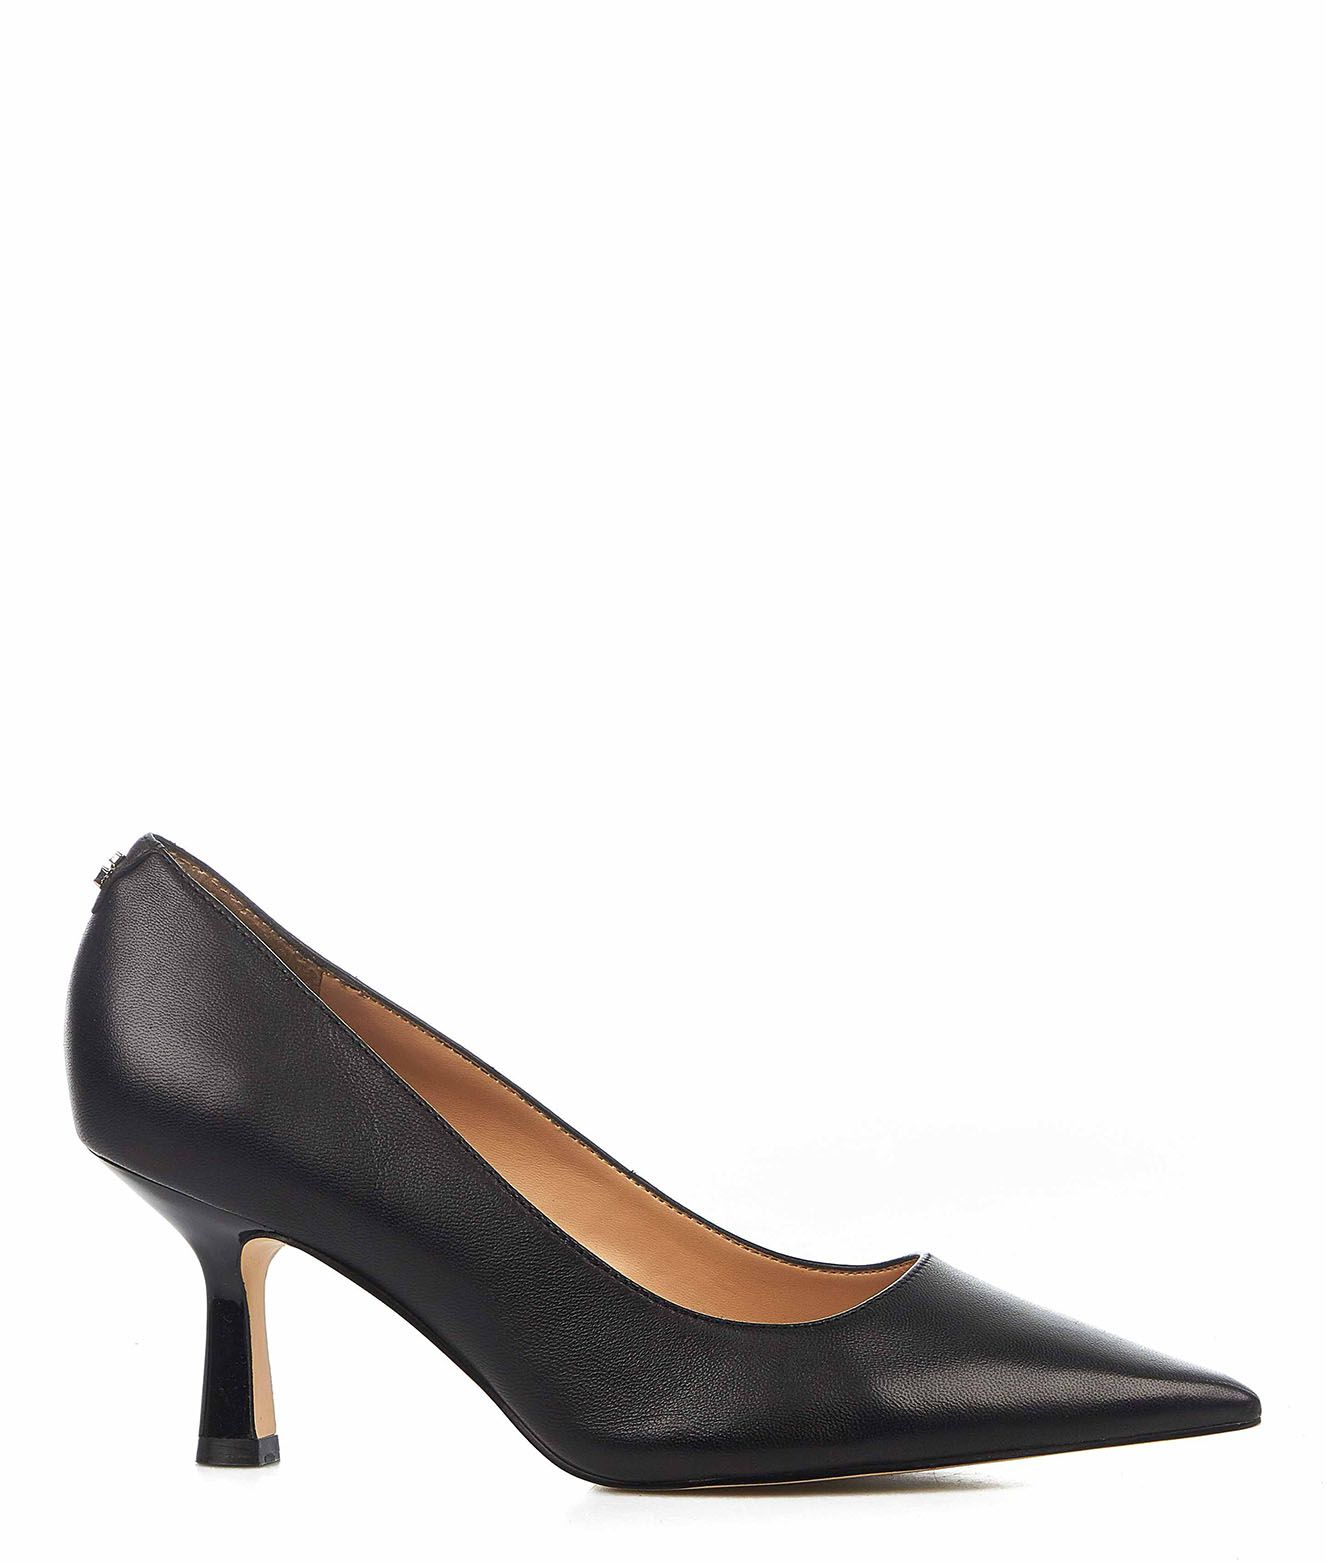 Guess PUMPS IN GENUINE LEATHER